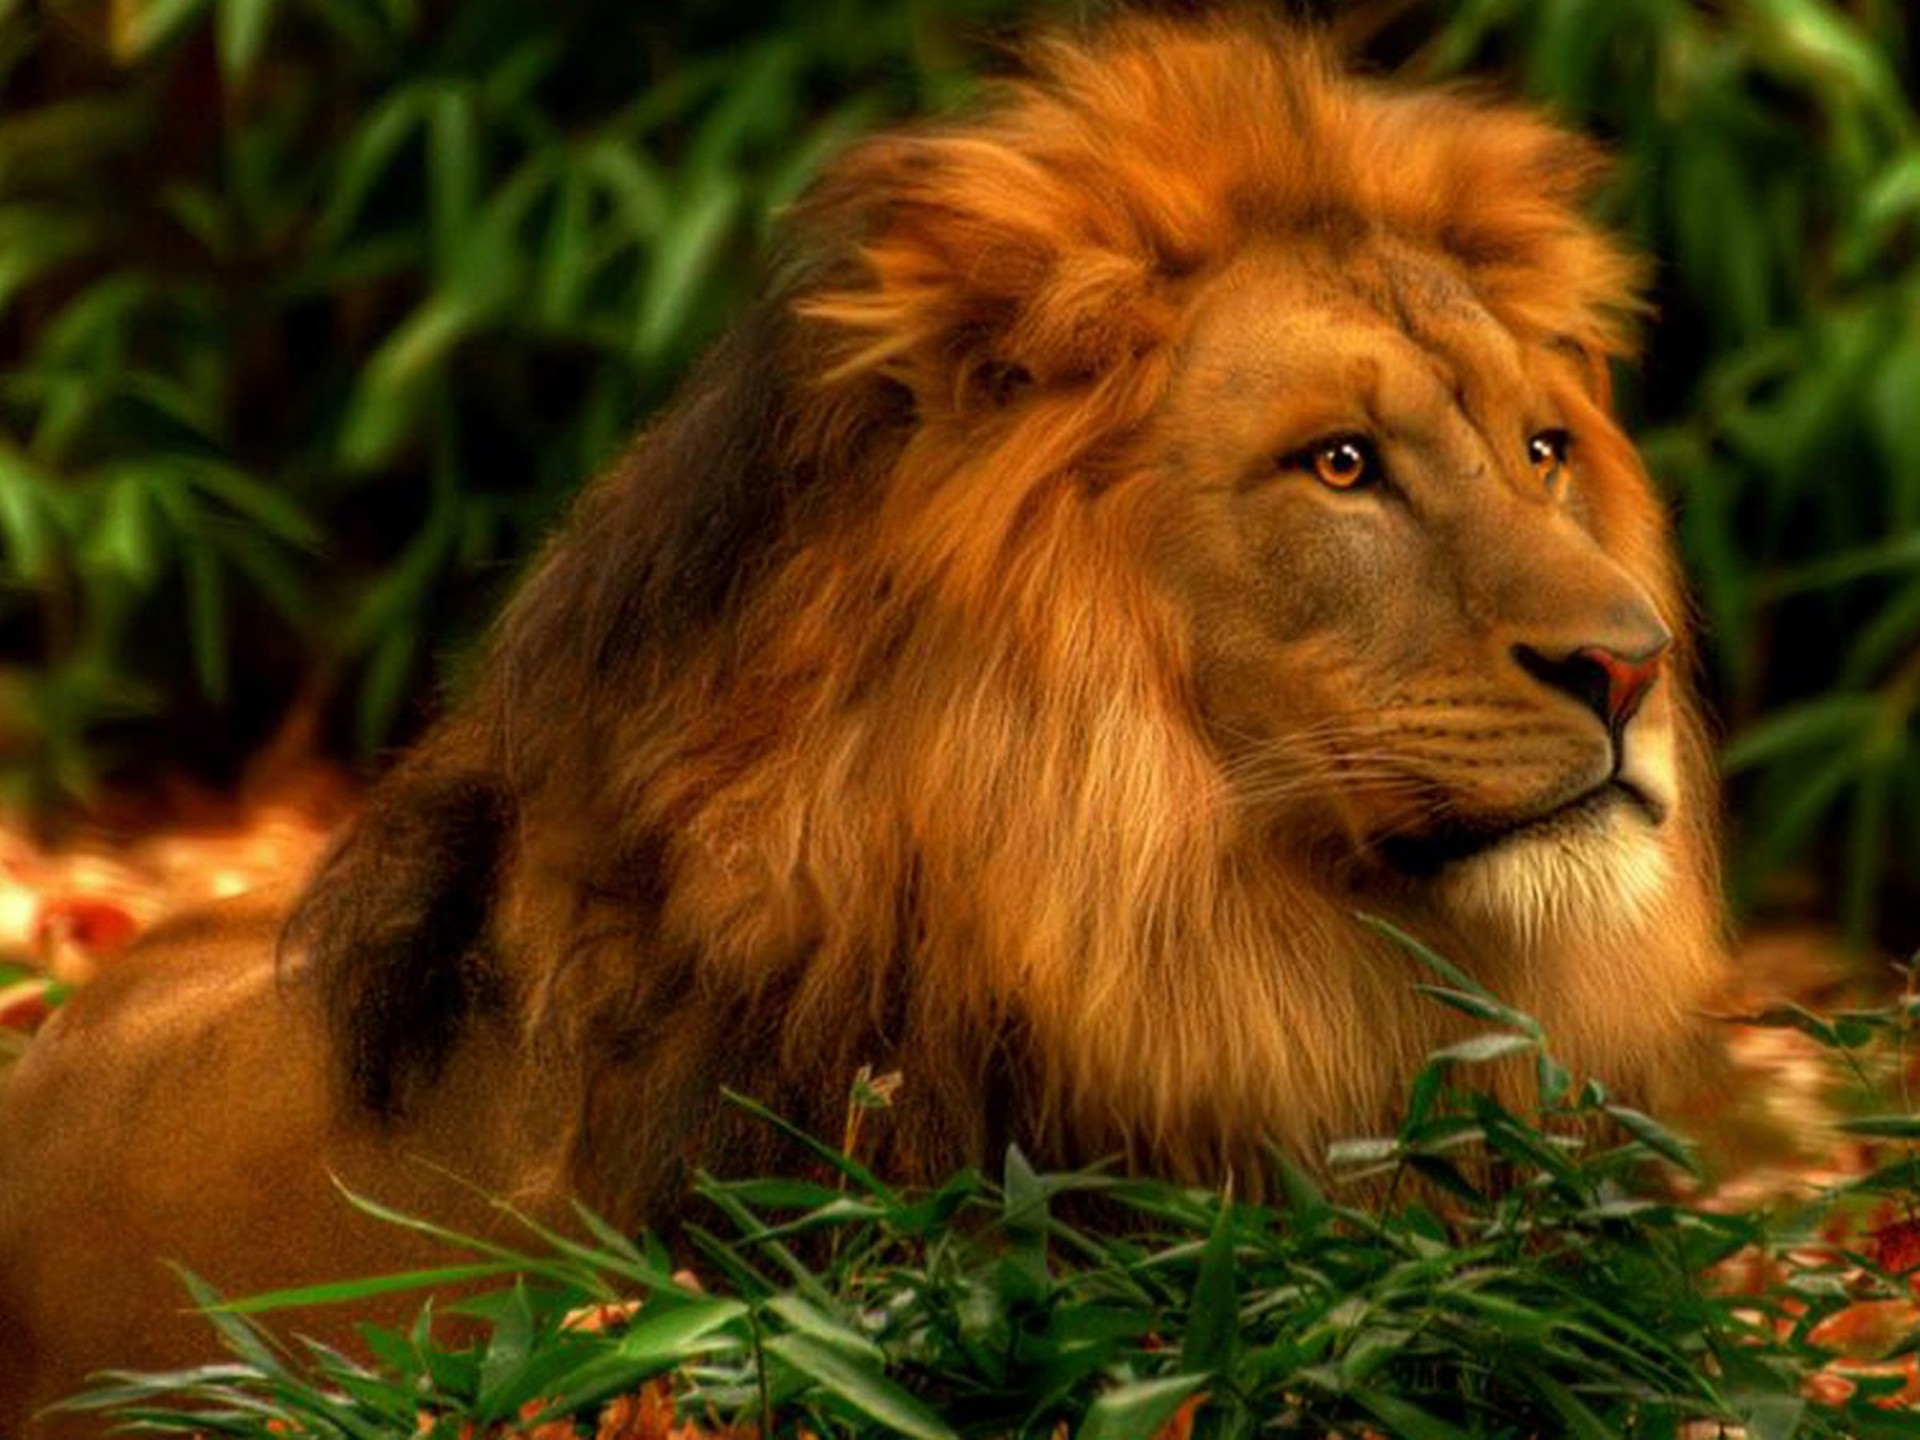 Lion Hd Wallpaper For Android Posted By Michelle Tremblay